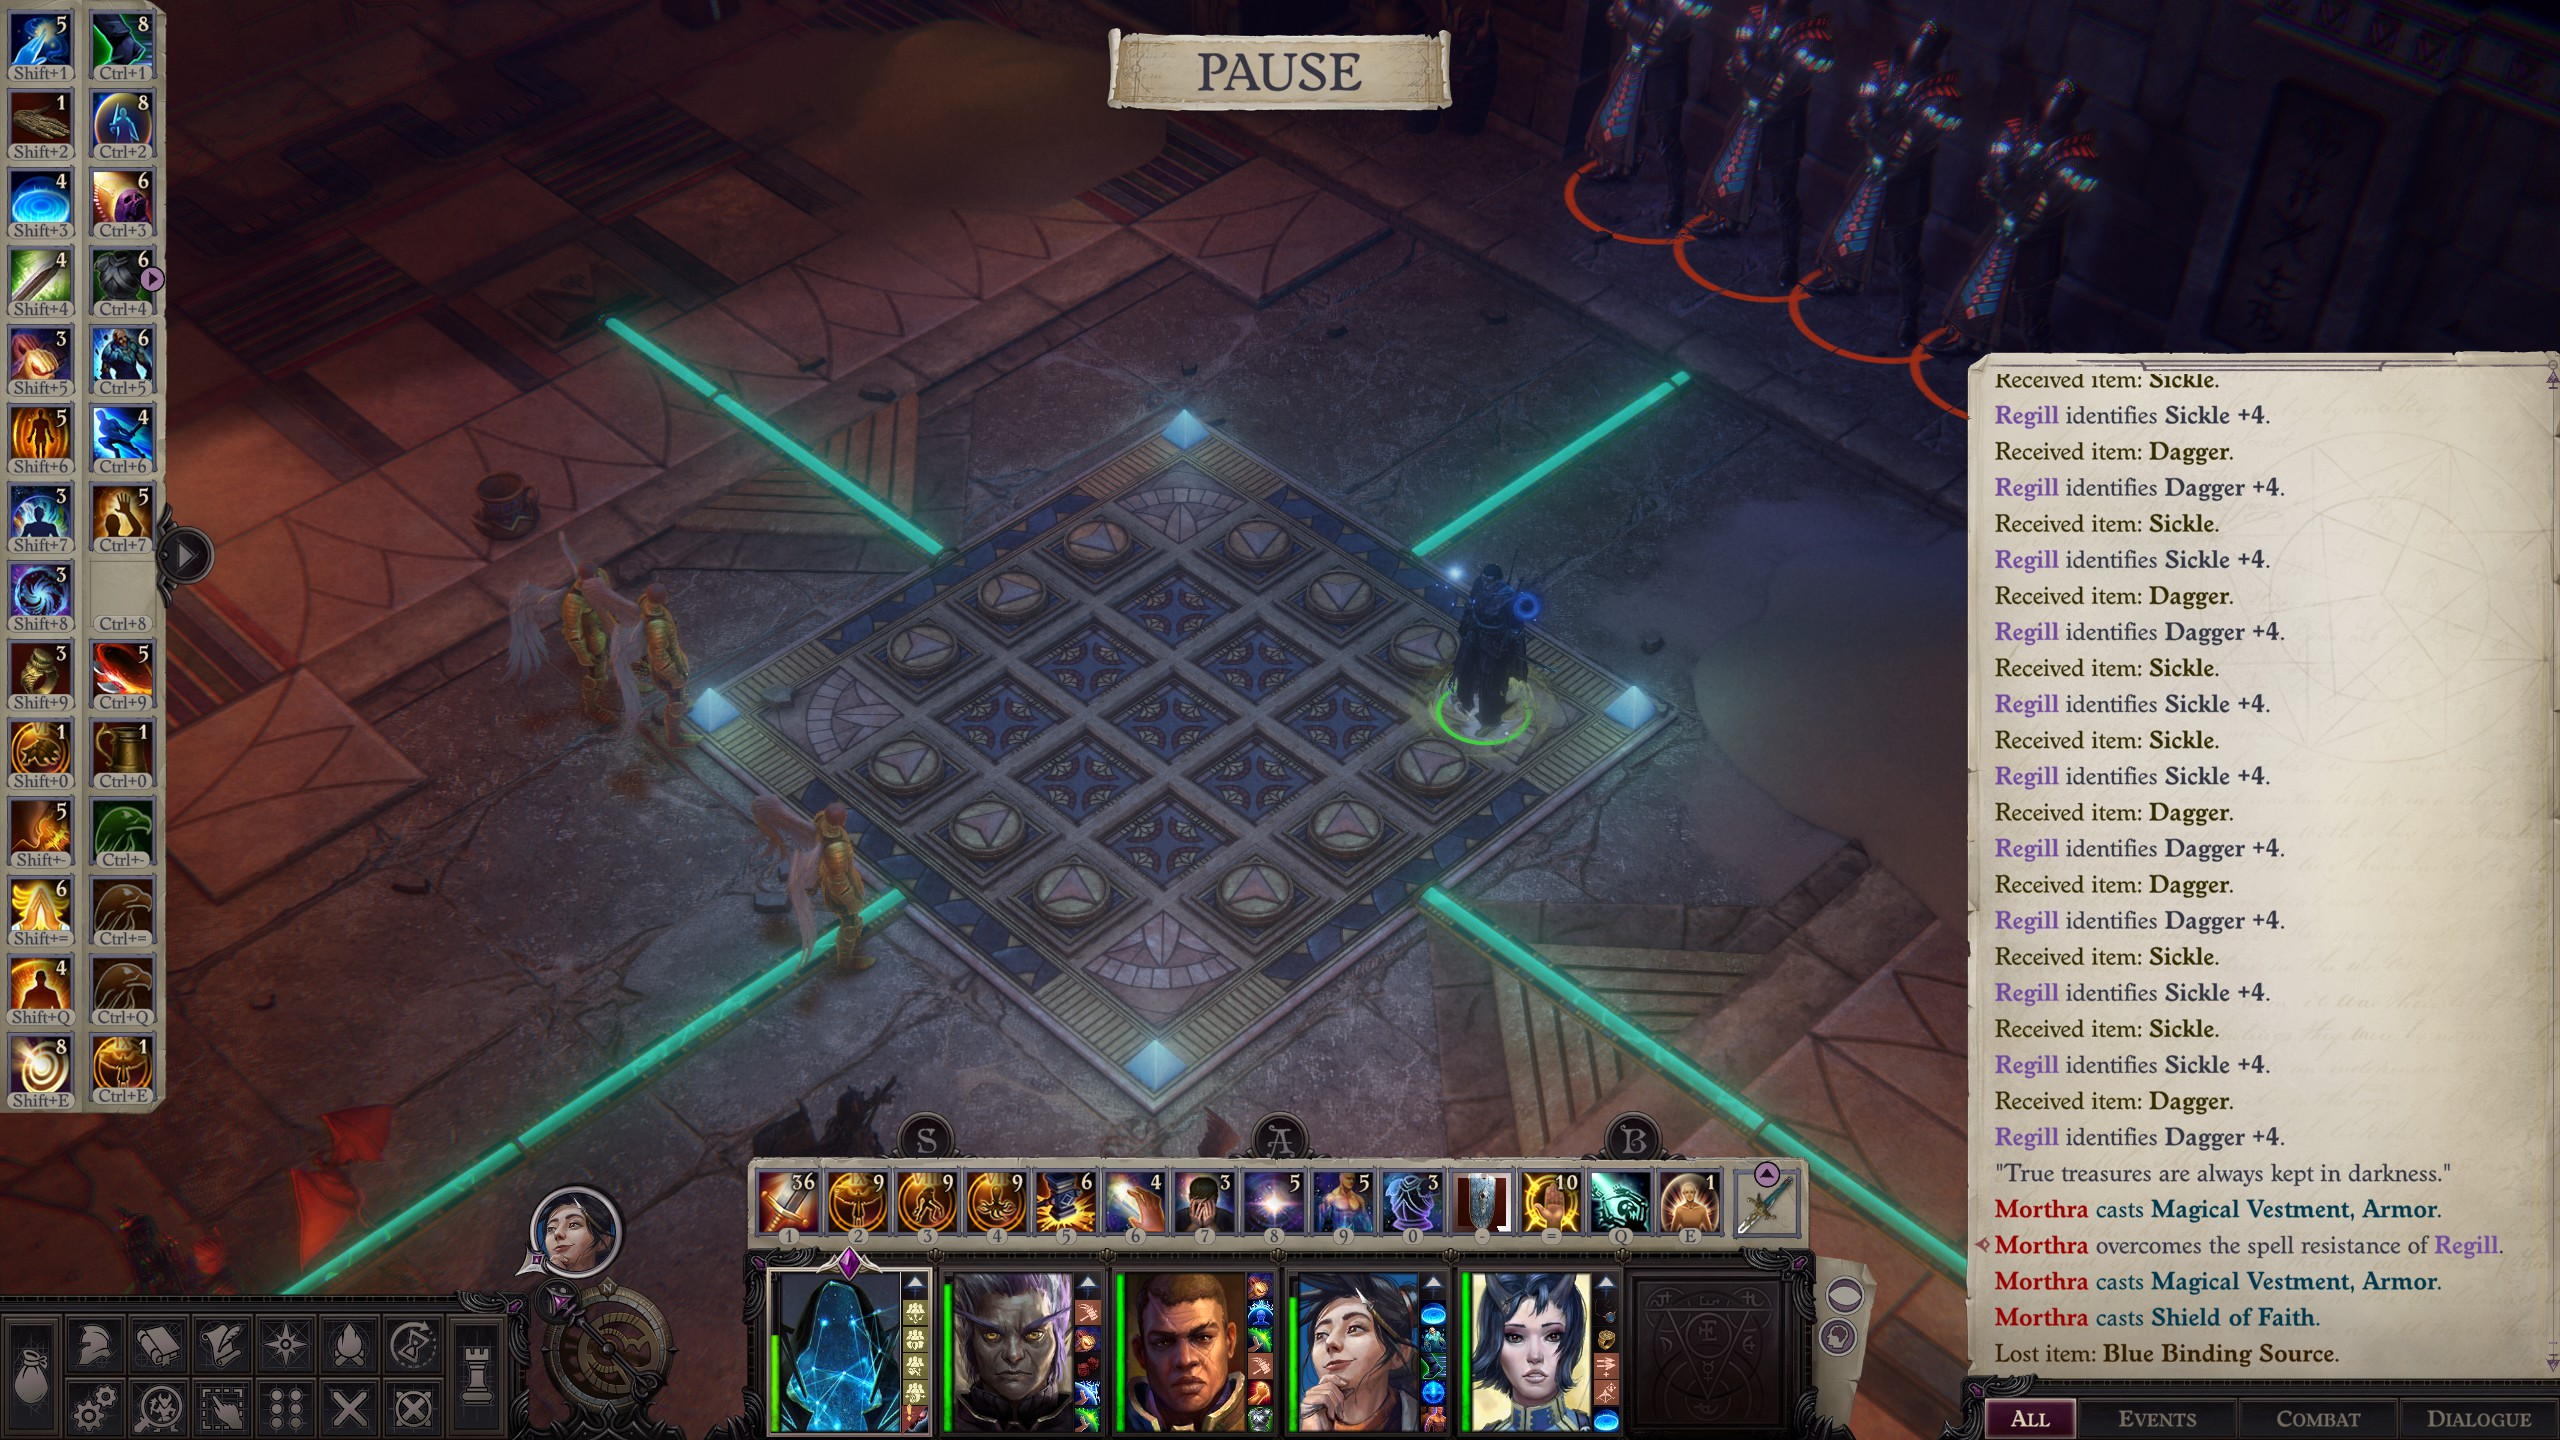 Pathfinder: Wrath of the Righteous - Puzzle Solution Tips for Enigma - Playthrough - Puzzle 2: Arrows - 41D2CEE